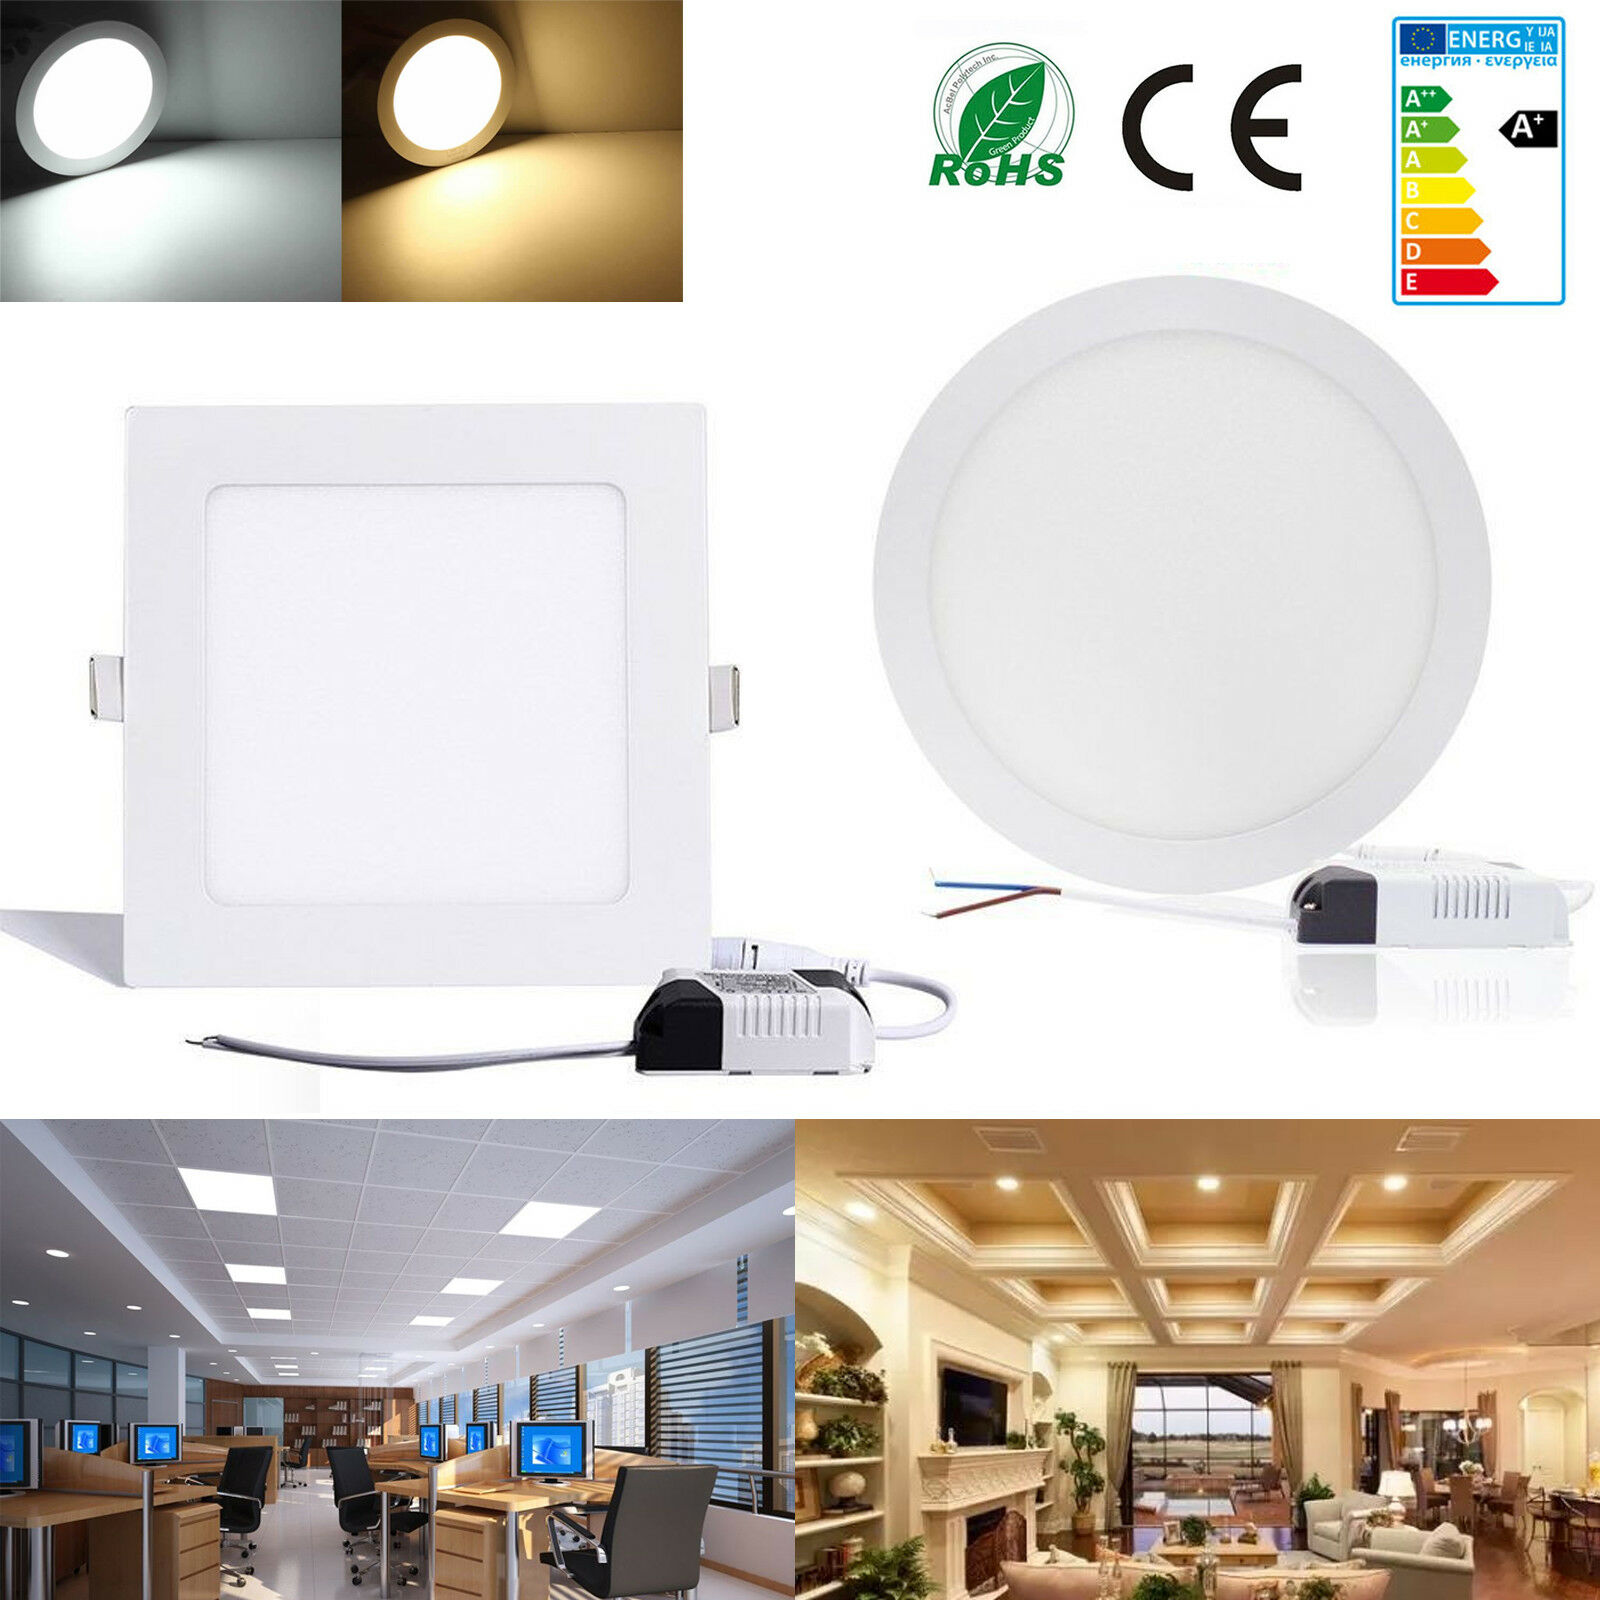 3W-24W Ultraslim Round Square Dimmable LED Recessed Ceiling Panel Light Fixture